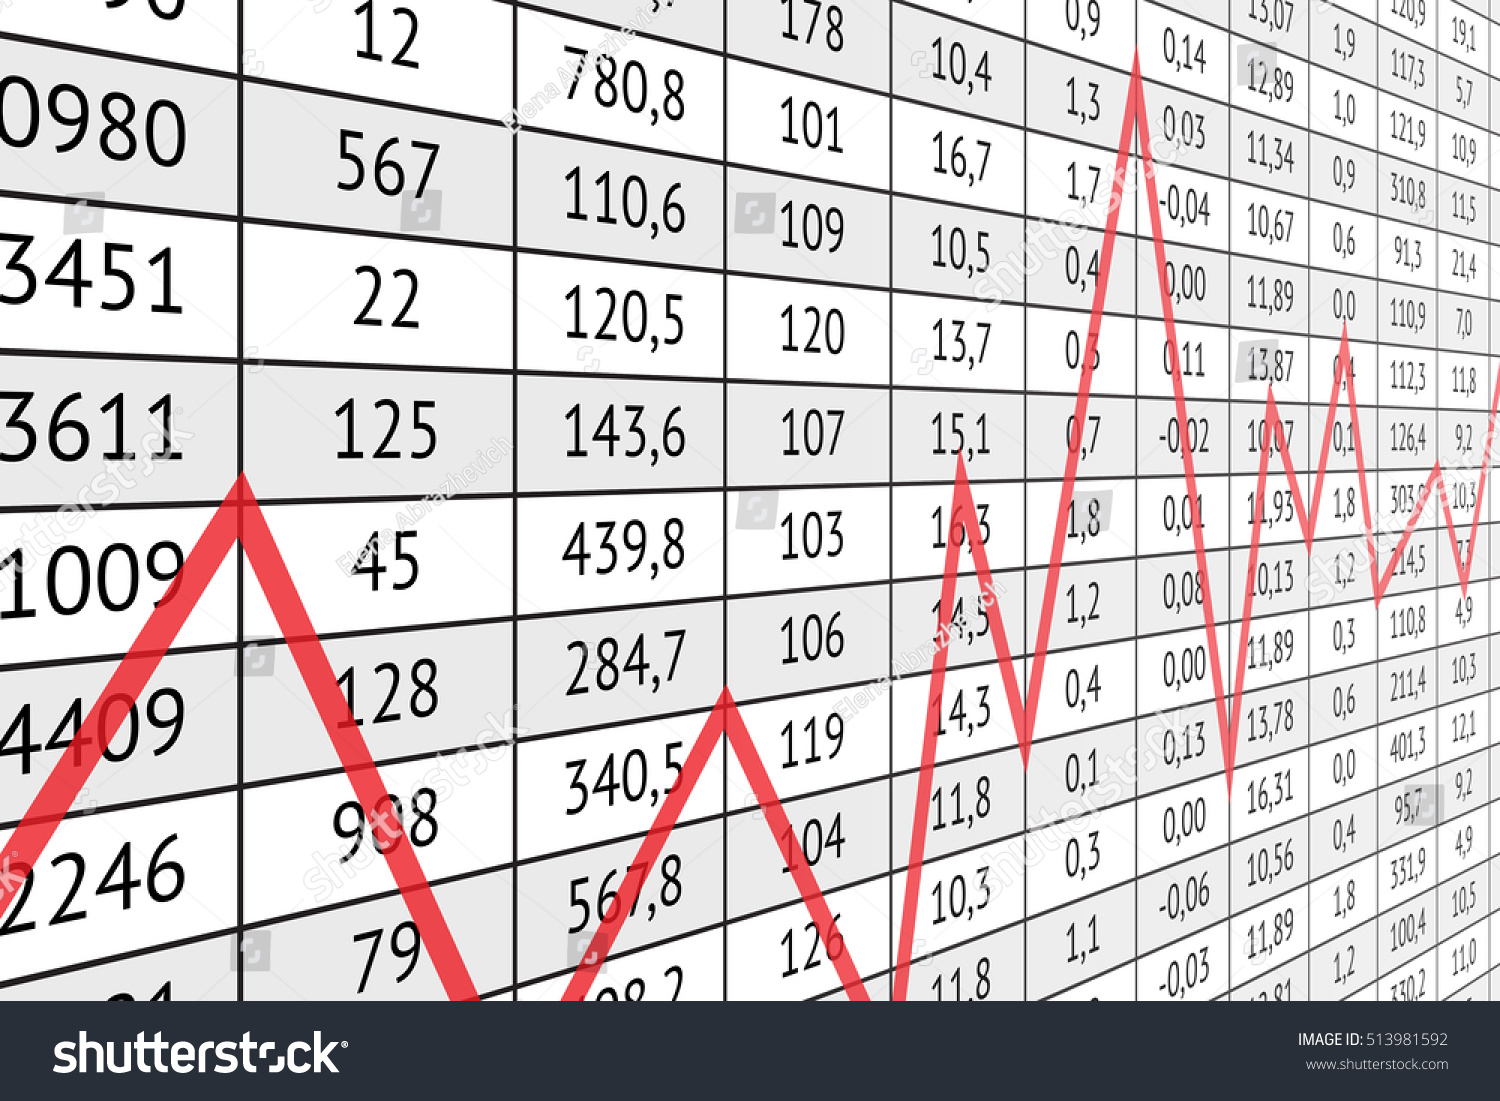 Swell Table Numerical Data Red Graph Line Stock Vector Royalty Download Free Architecture Designs Scobabritishbridgeorg